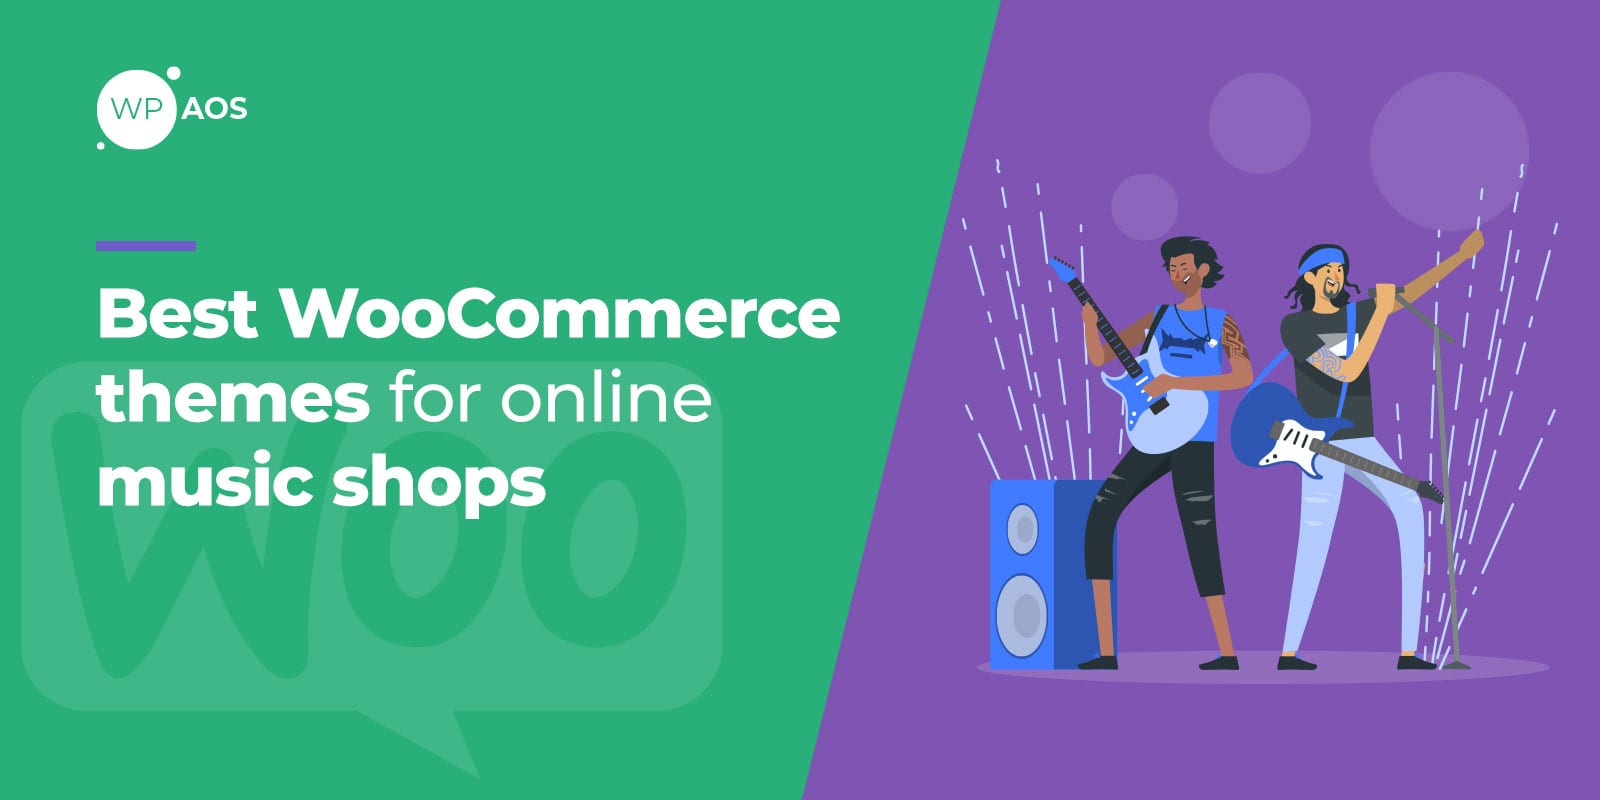 Best WooCommerce Themes for Online Music Shops, wpaos